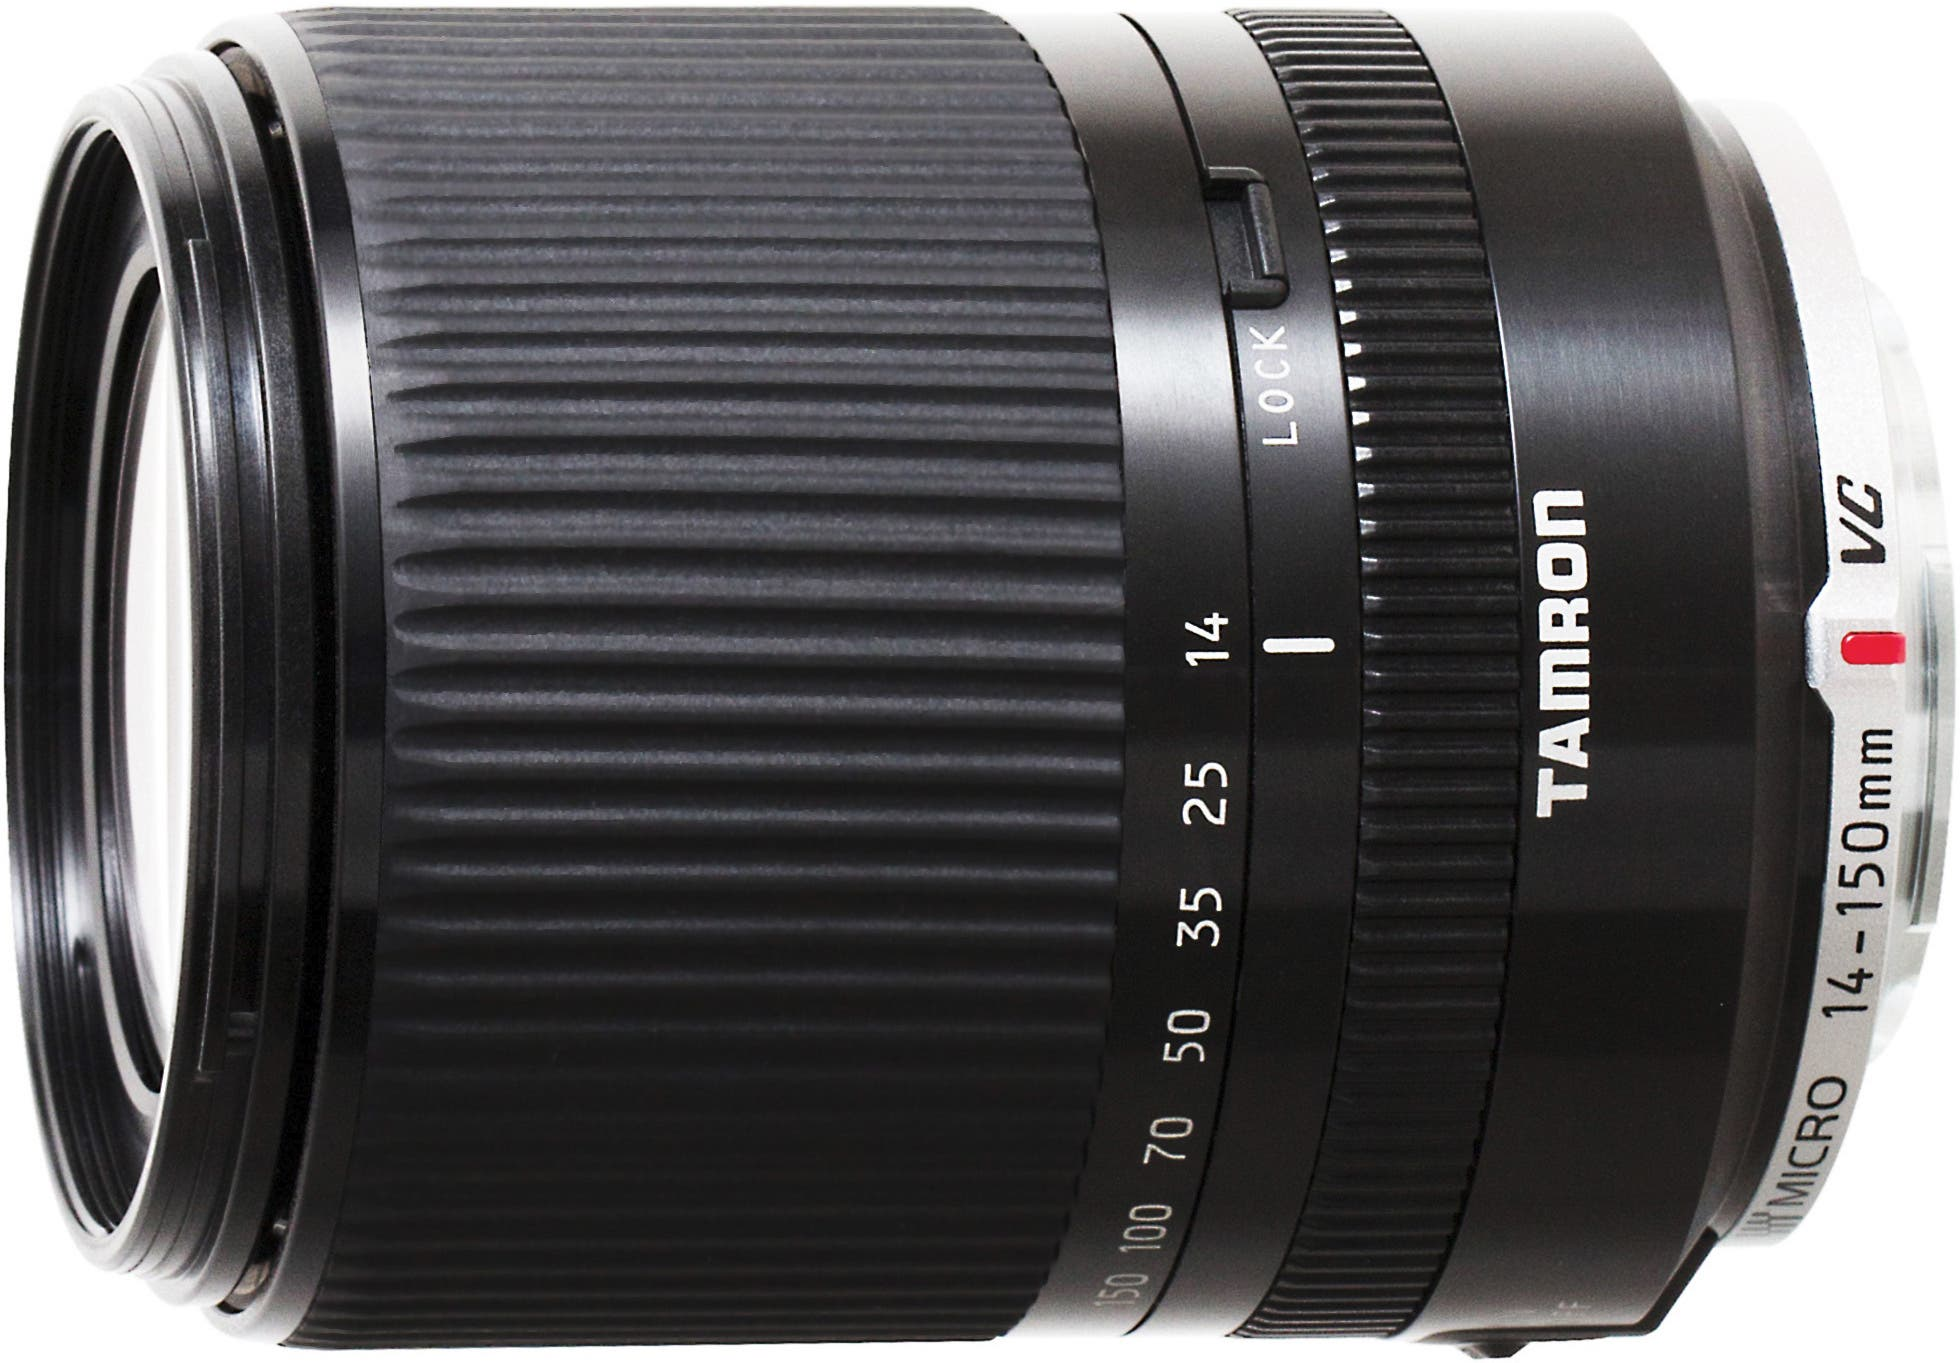 Tamron Announces 14-150mm Superzoom Lens for Micro Four Thirds